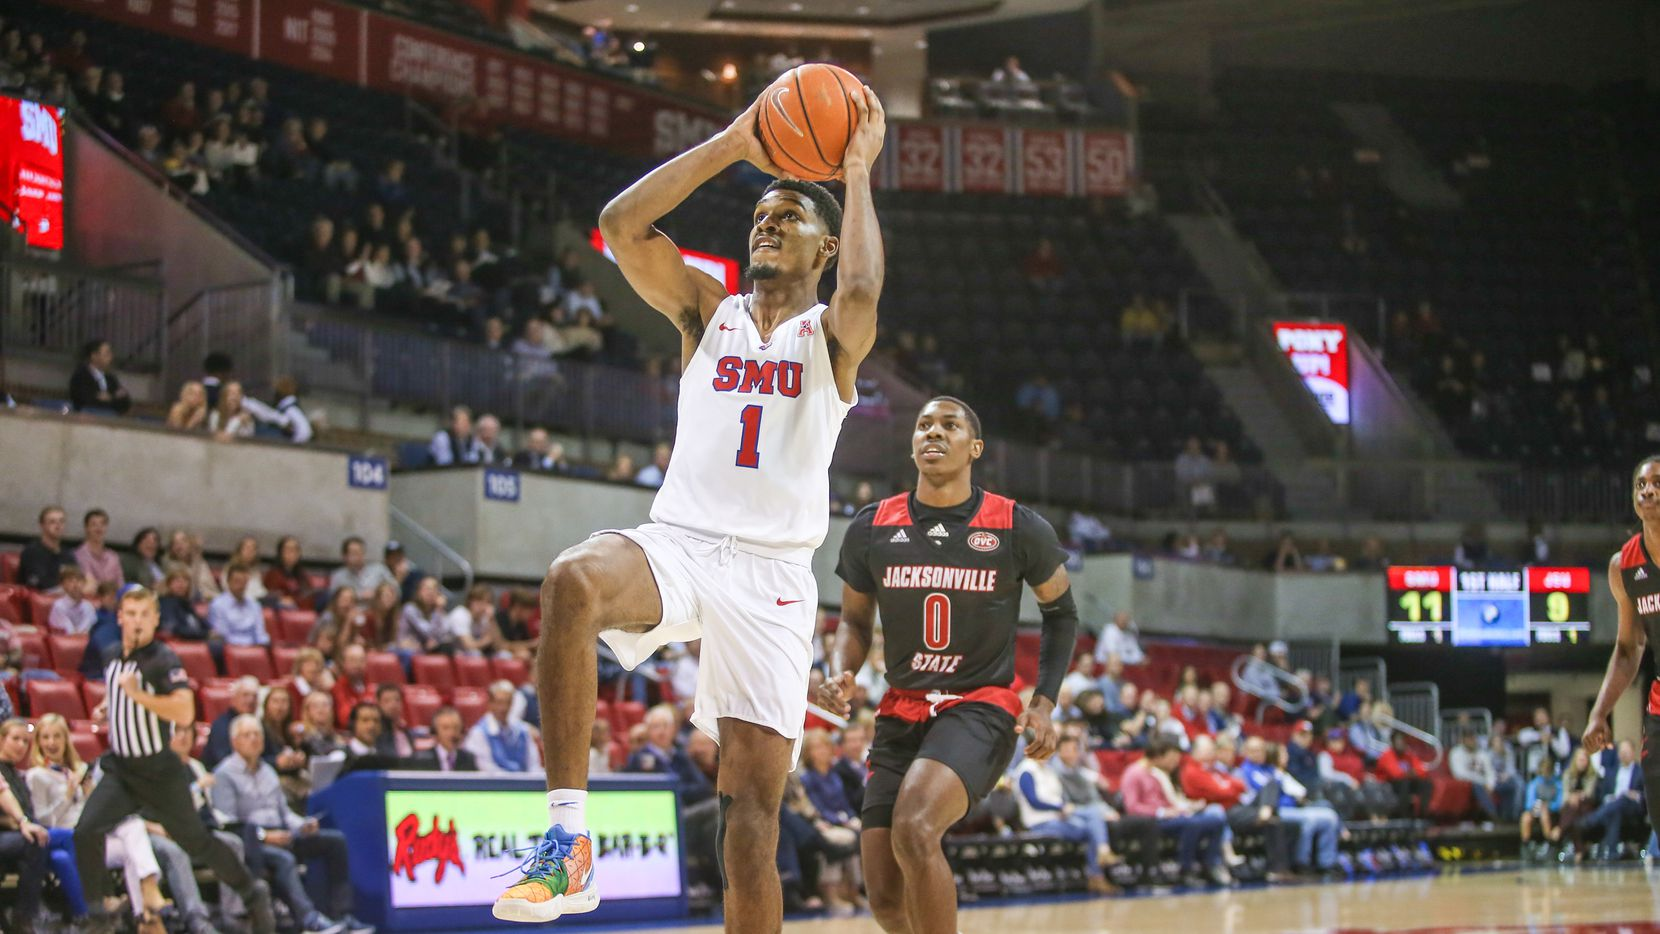 DALLAS, TX - NOVEMBER 05: Southern Methodist Mustangs forward Feron Hunt (1) drives to the basket during the game between SMU and Jacksonville State on November 5, 2019 at Moody Coliseum in Dallas, TX.